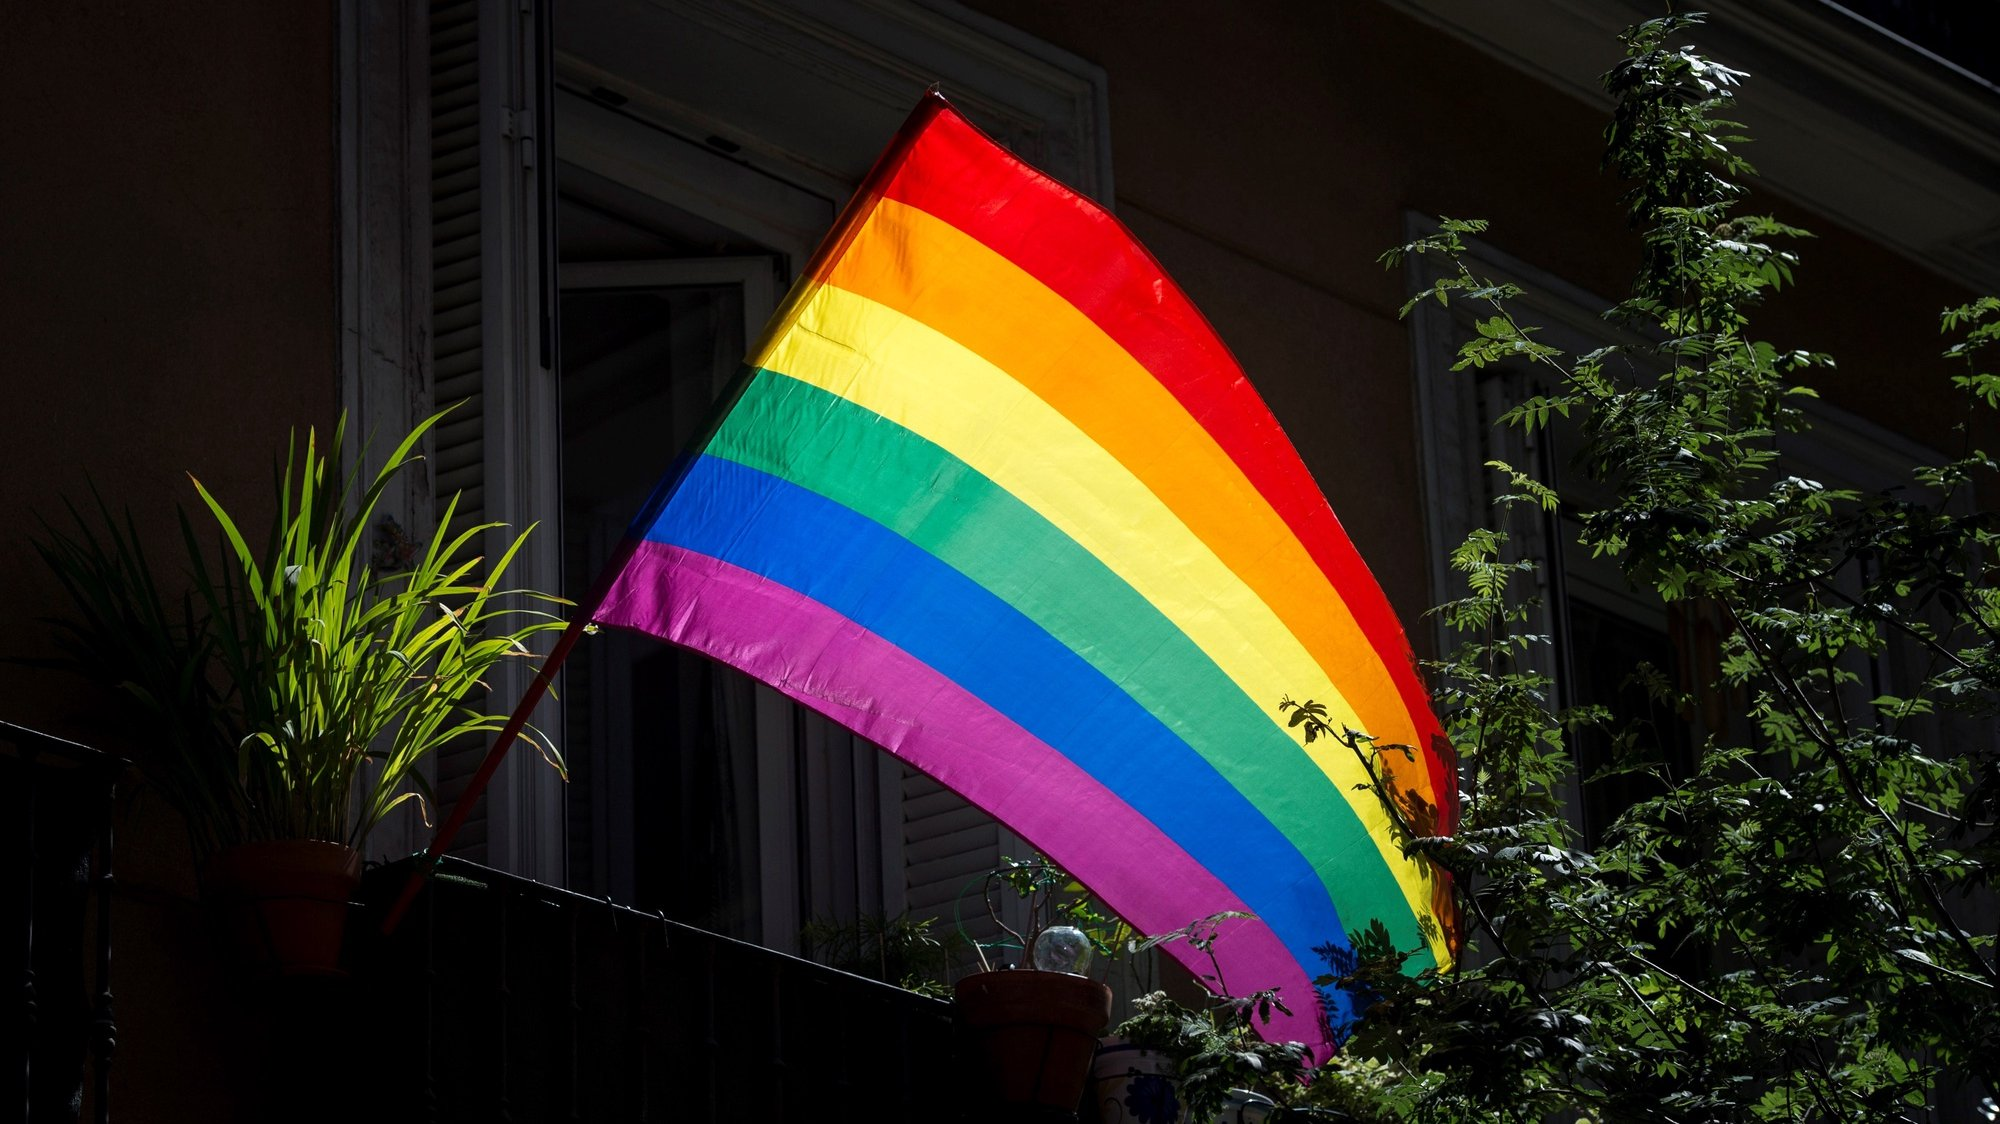 epa08511670 A rainbow flag is seen at the window of a flat in Chueca, known as the 'gay neighborhood', in Madrid, Spain, 27 June 2020.  EPA/Luca Piergiovanni